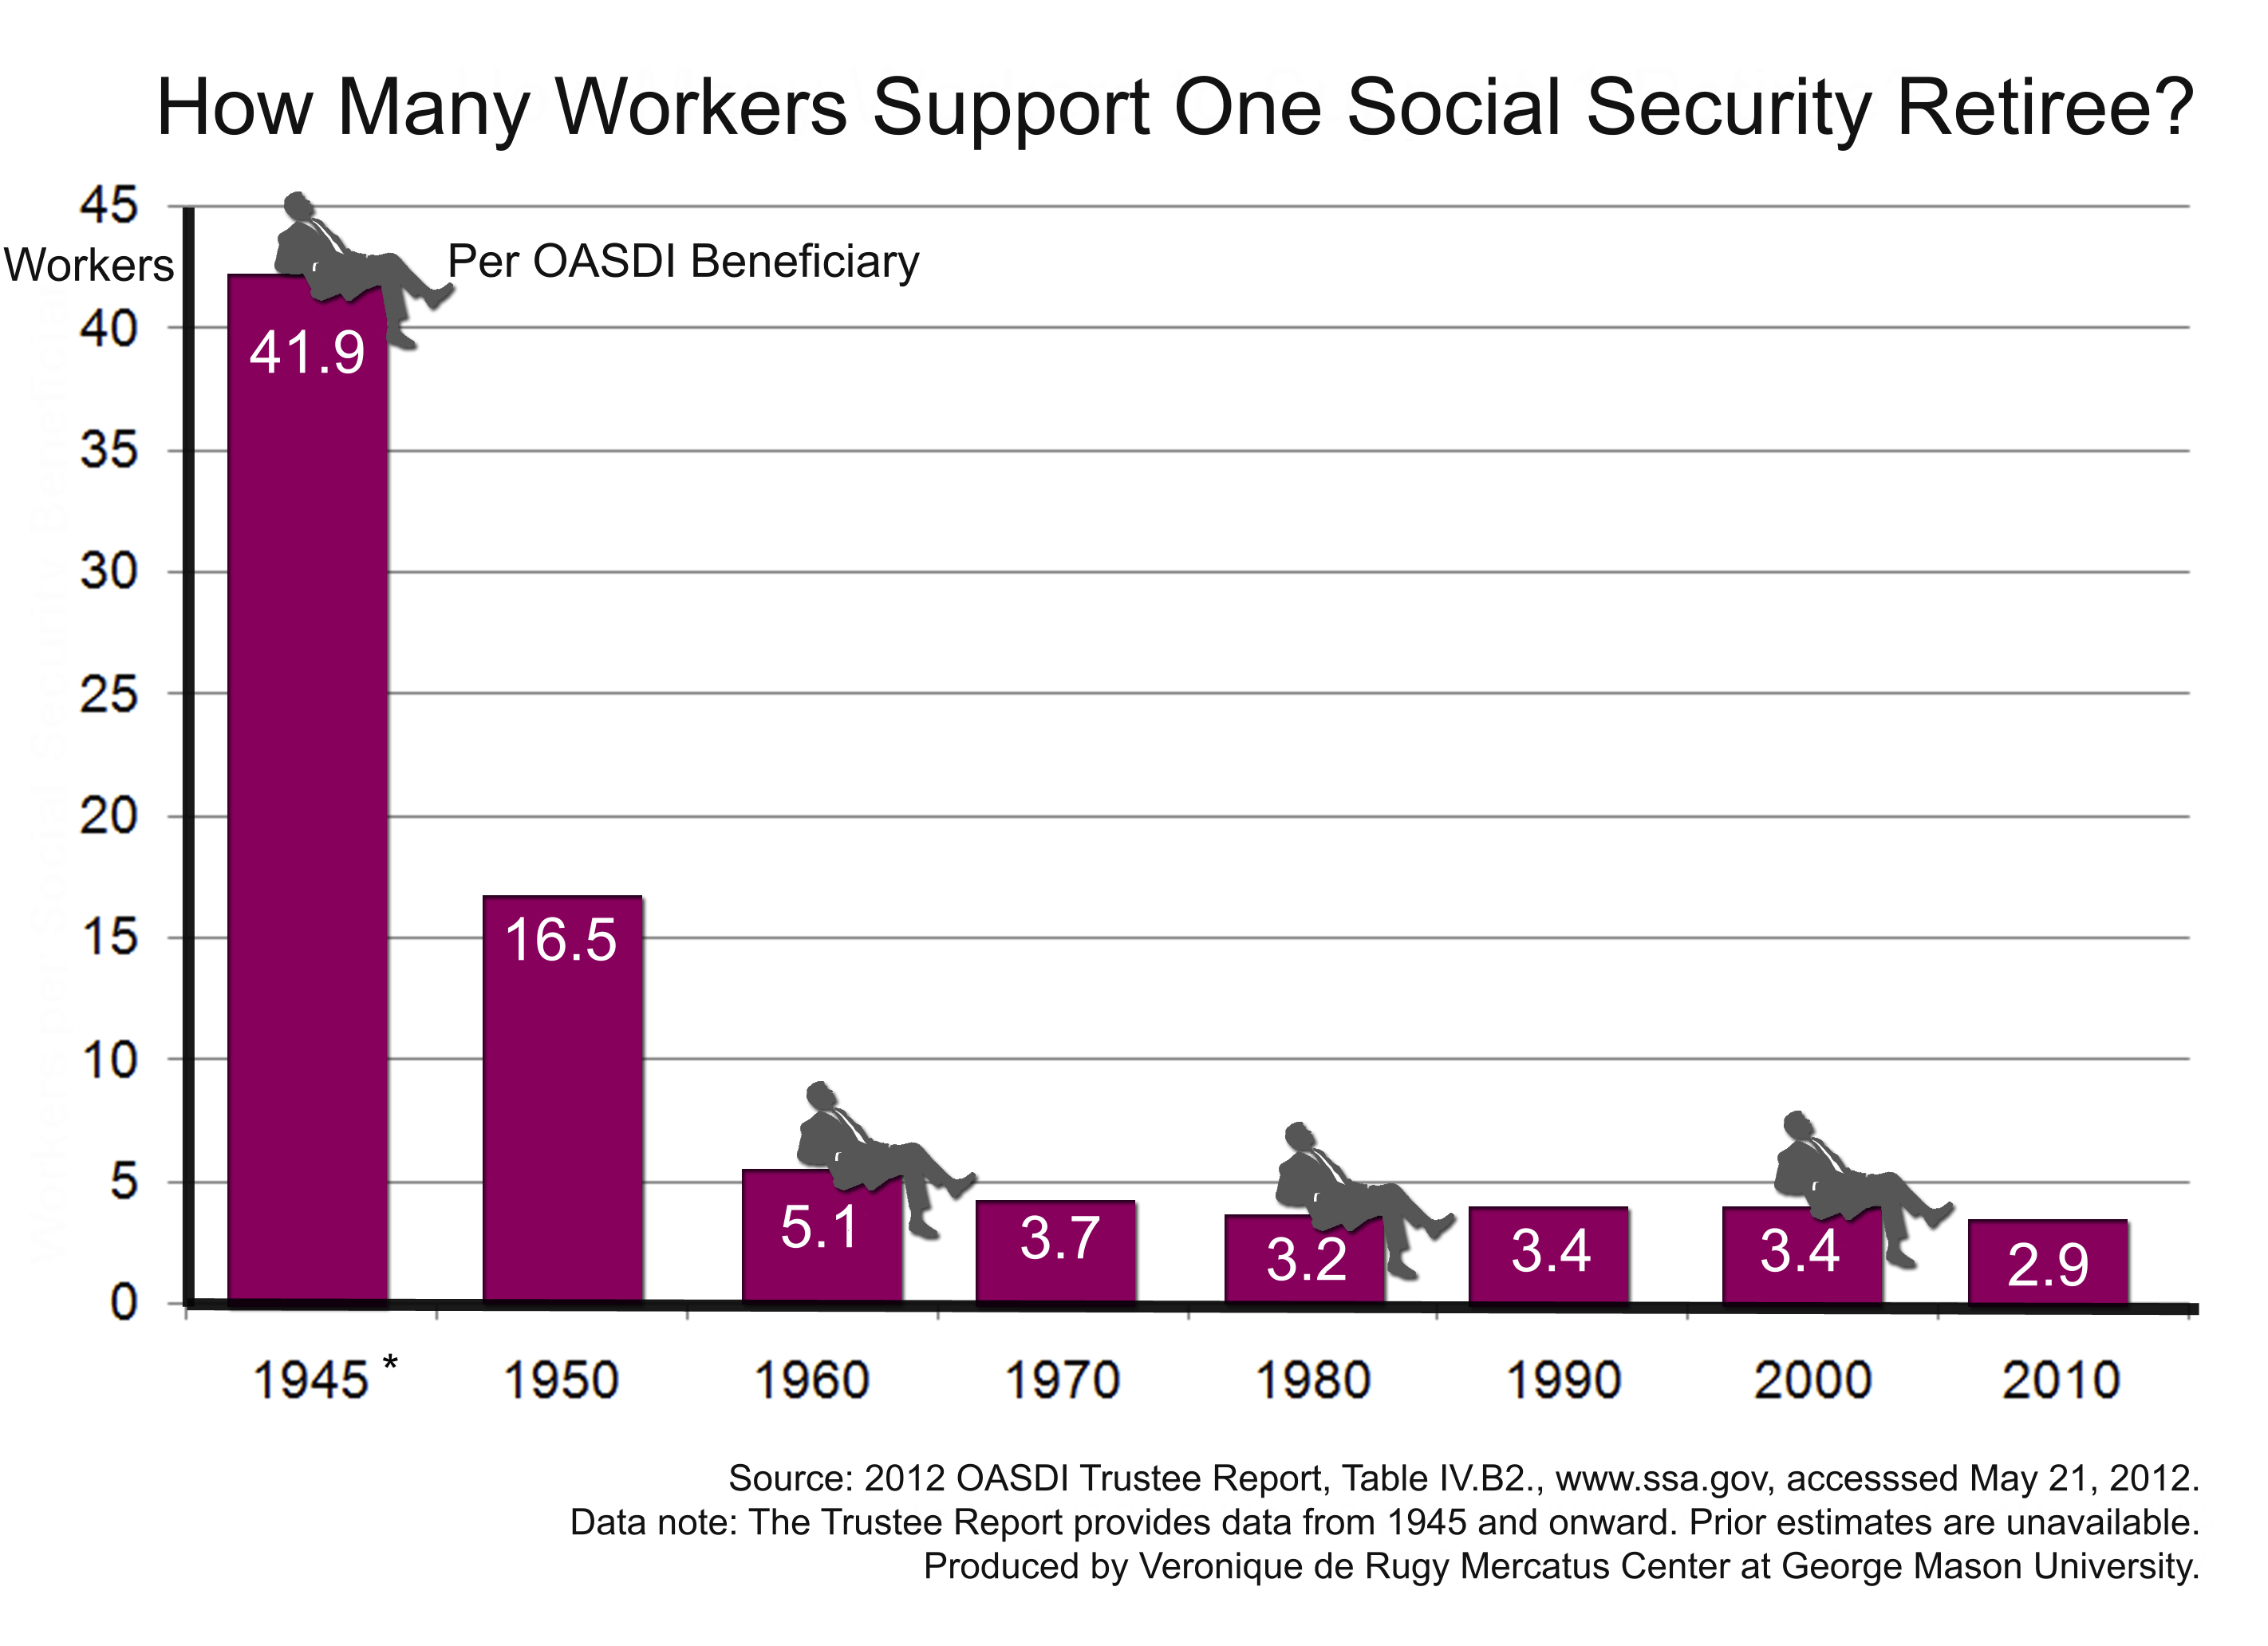 How Many Workers Support One Social Security Retiree